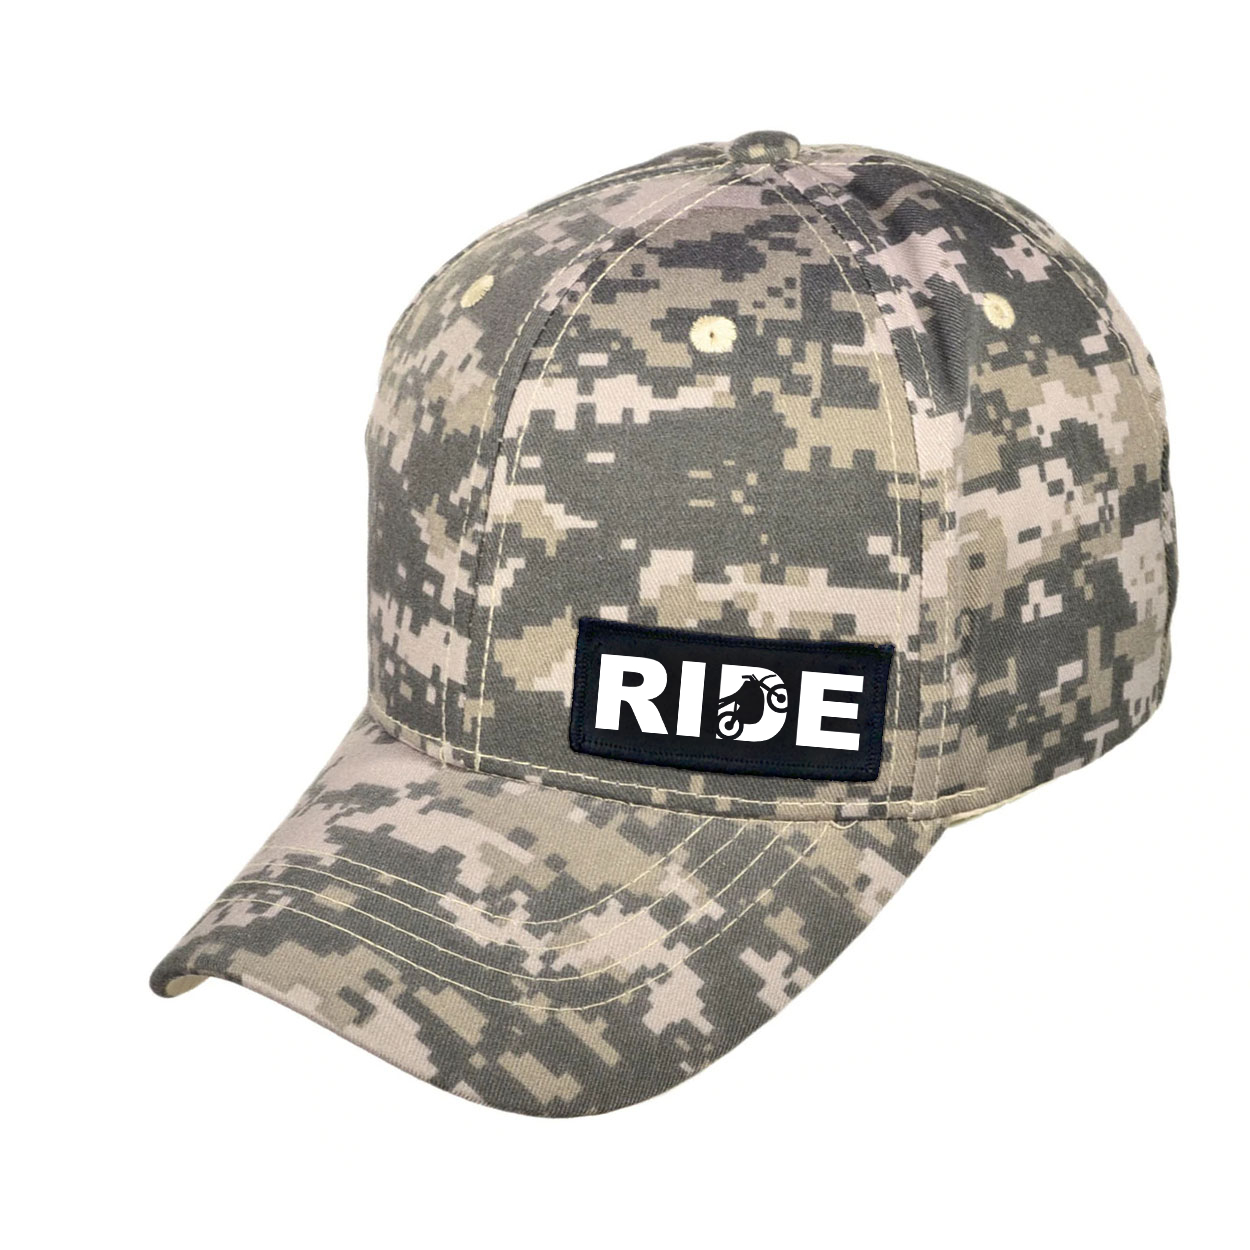 Ride Moto Logo Night Out Woven Patch Hat Digital Camo (White Logo)